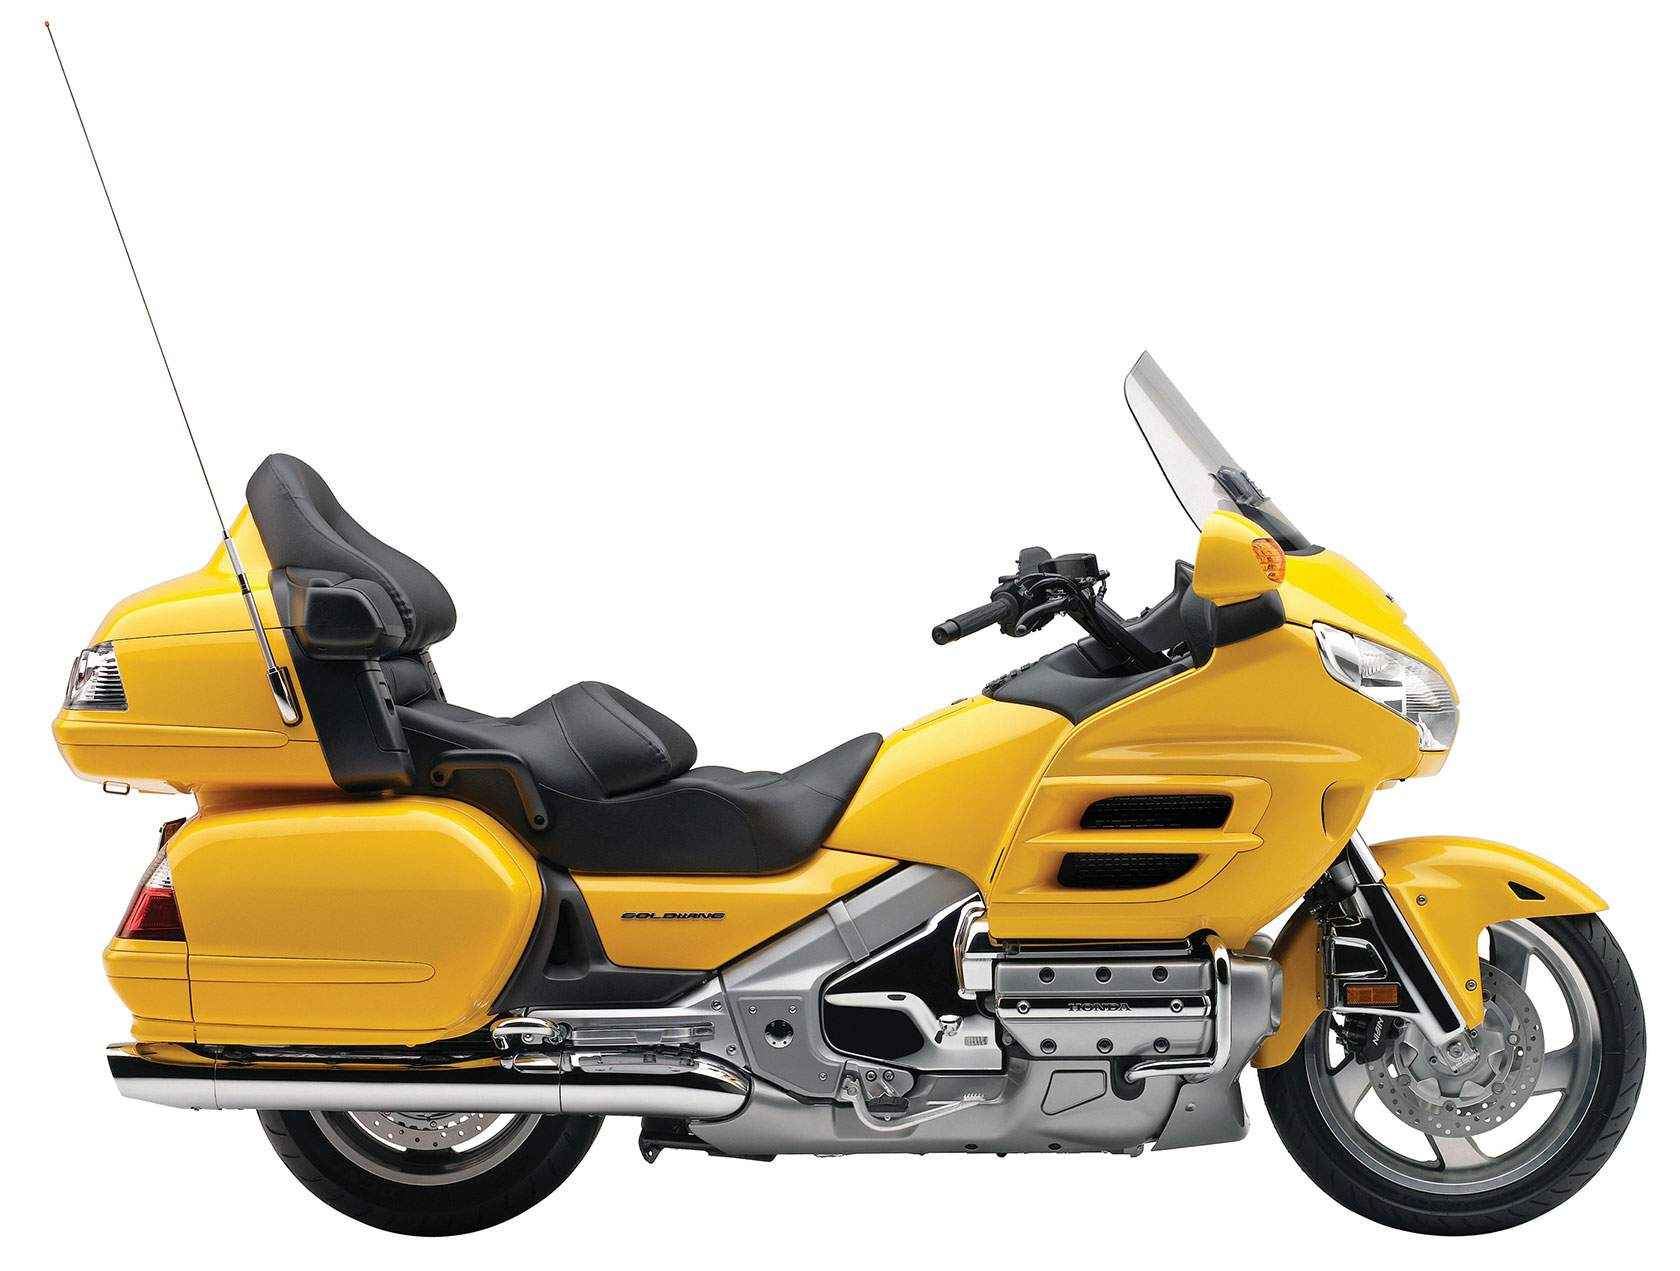 Мотоцикл Honda GLX 1800 Gold Wing 2010